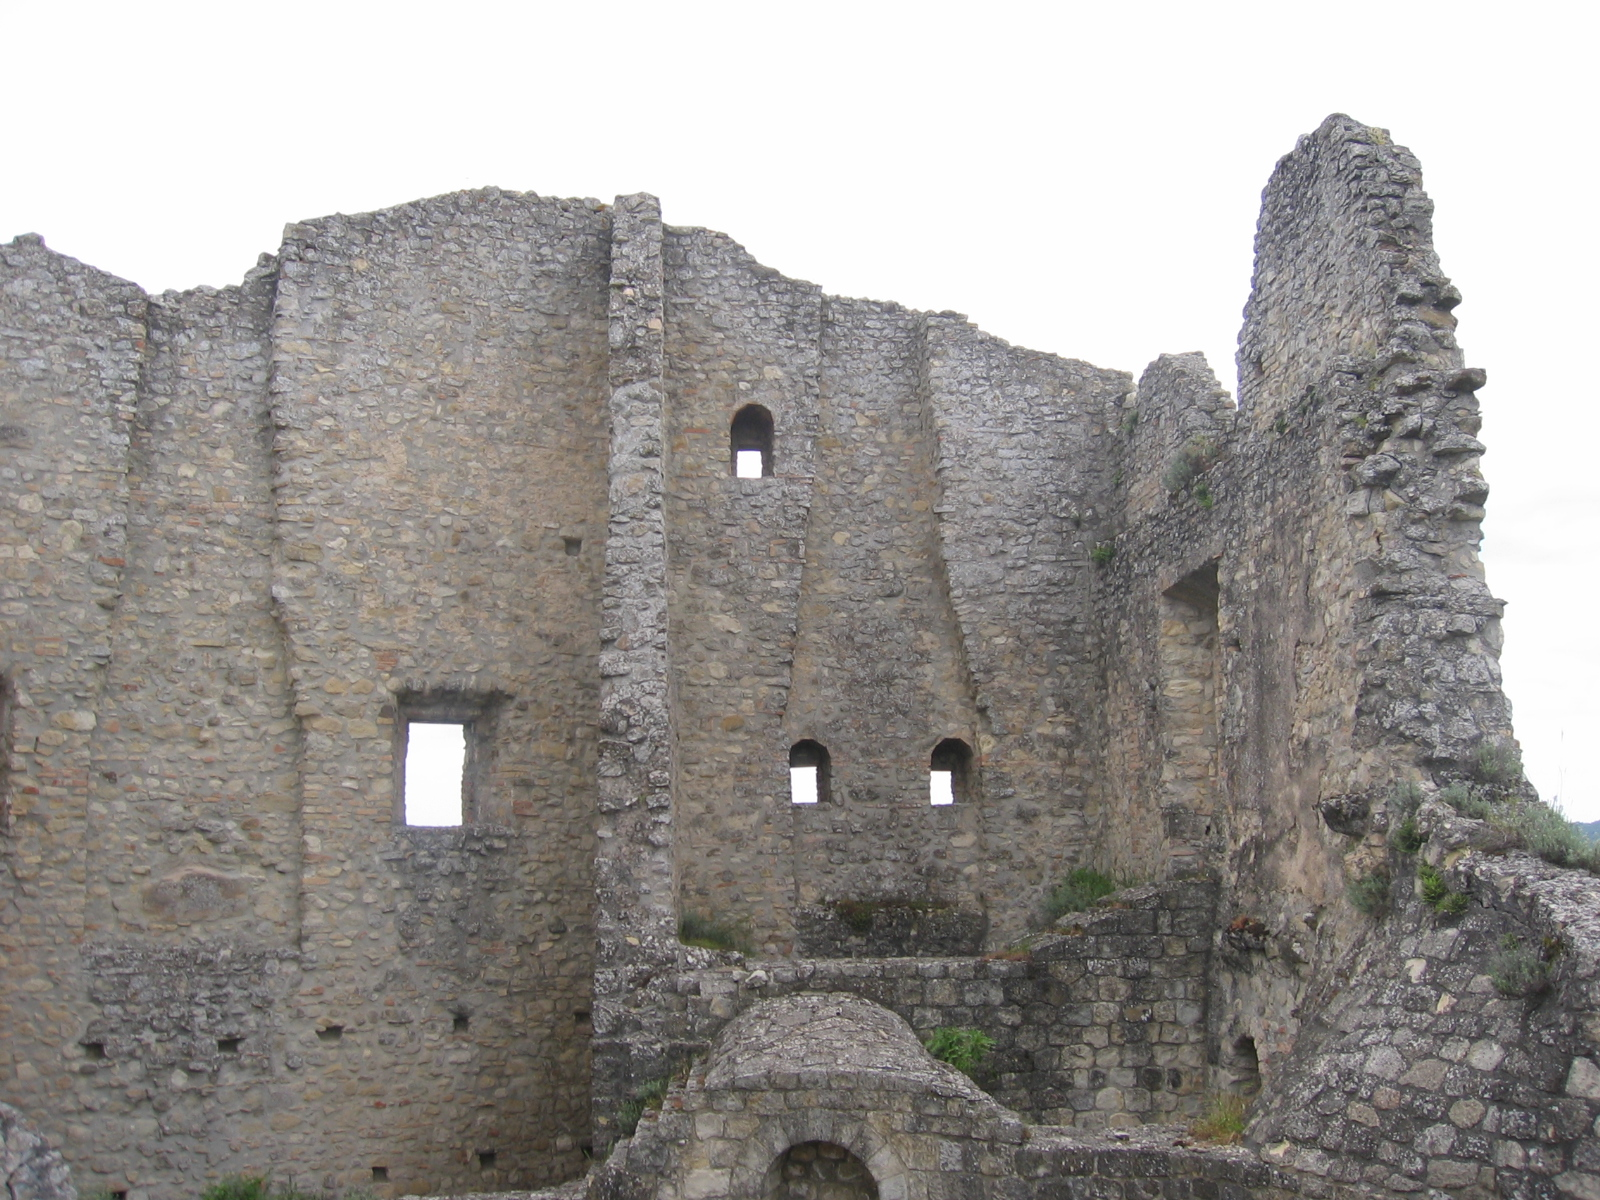 Note: The authors are not liable in the event of ghost encounters at this castle site.